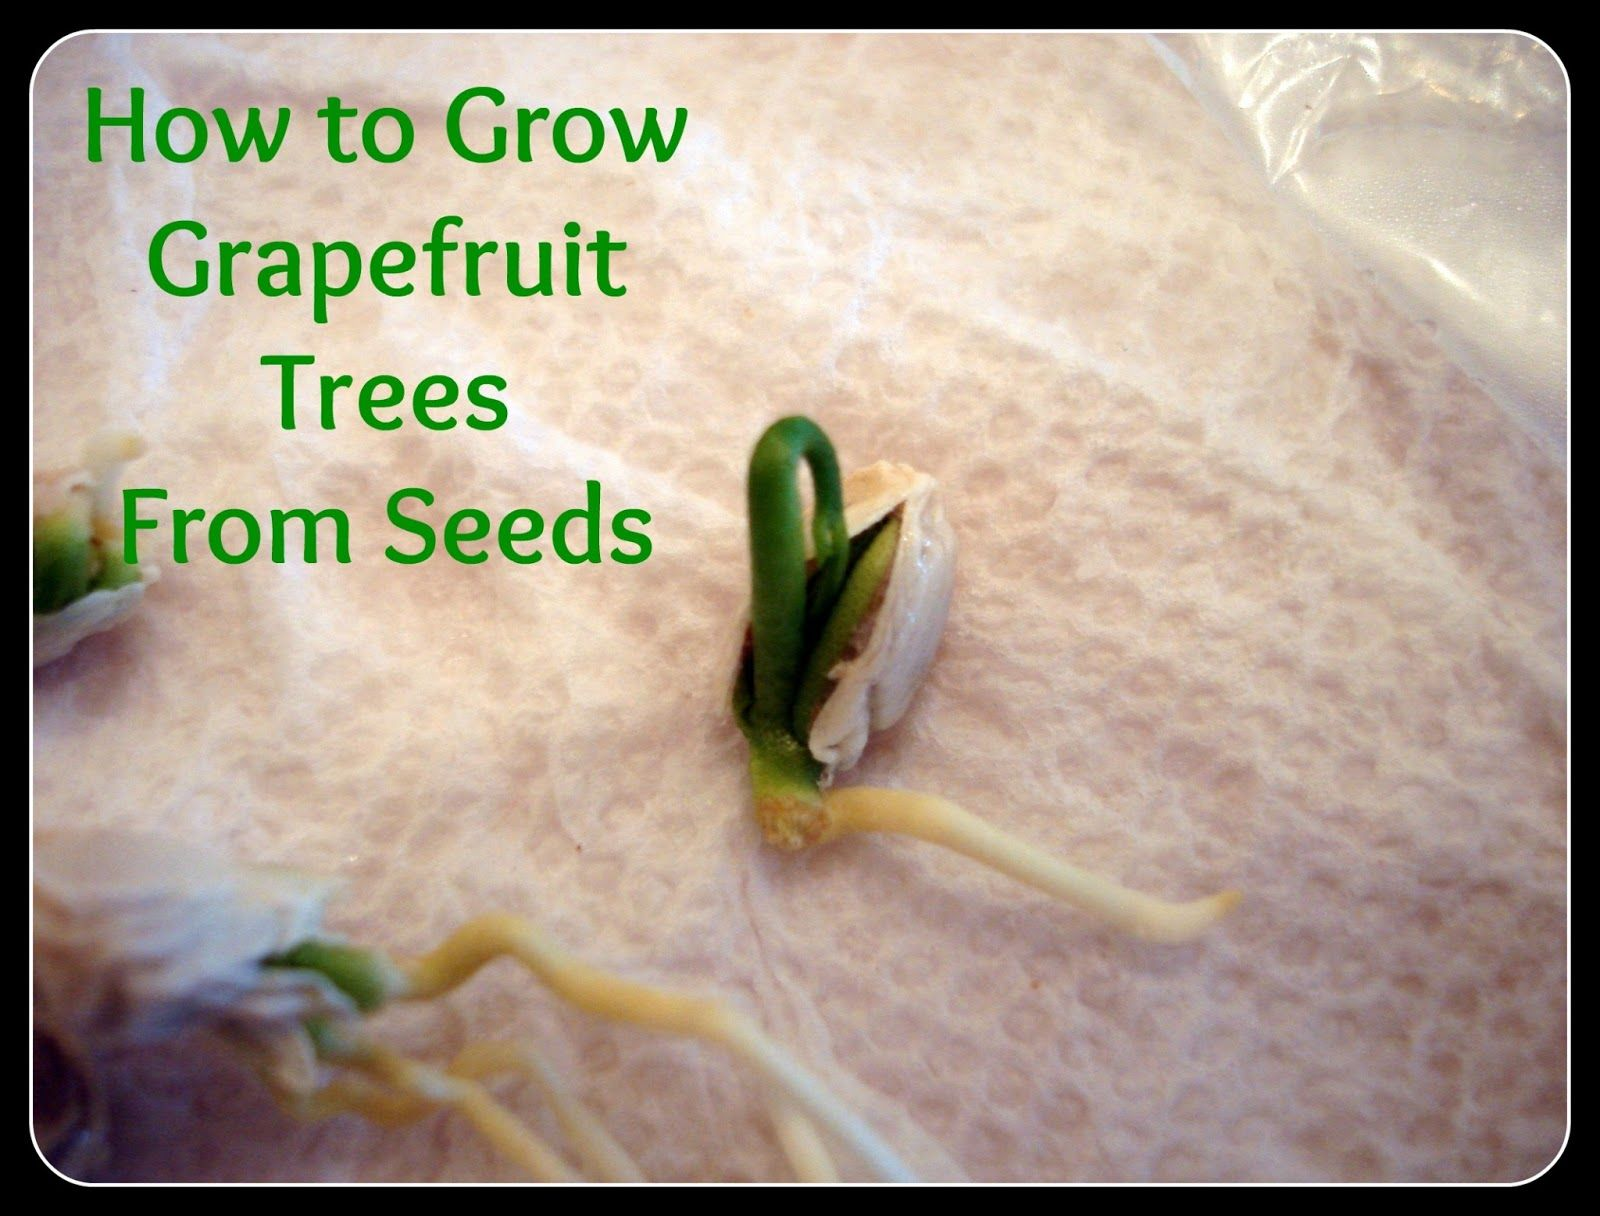 How To Grow Grapefruit Trees From Seeds Growing Gardens Plants Tree